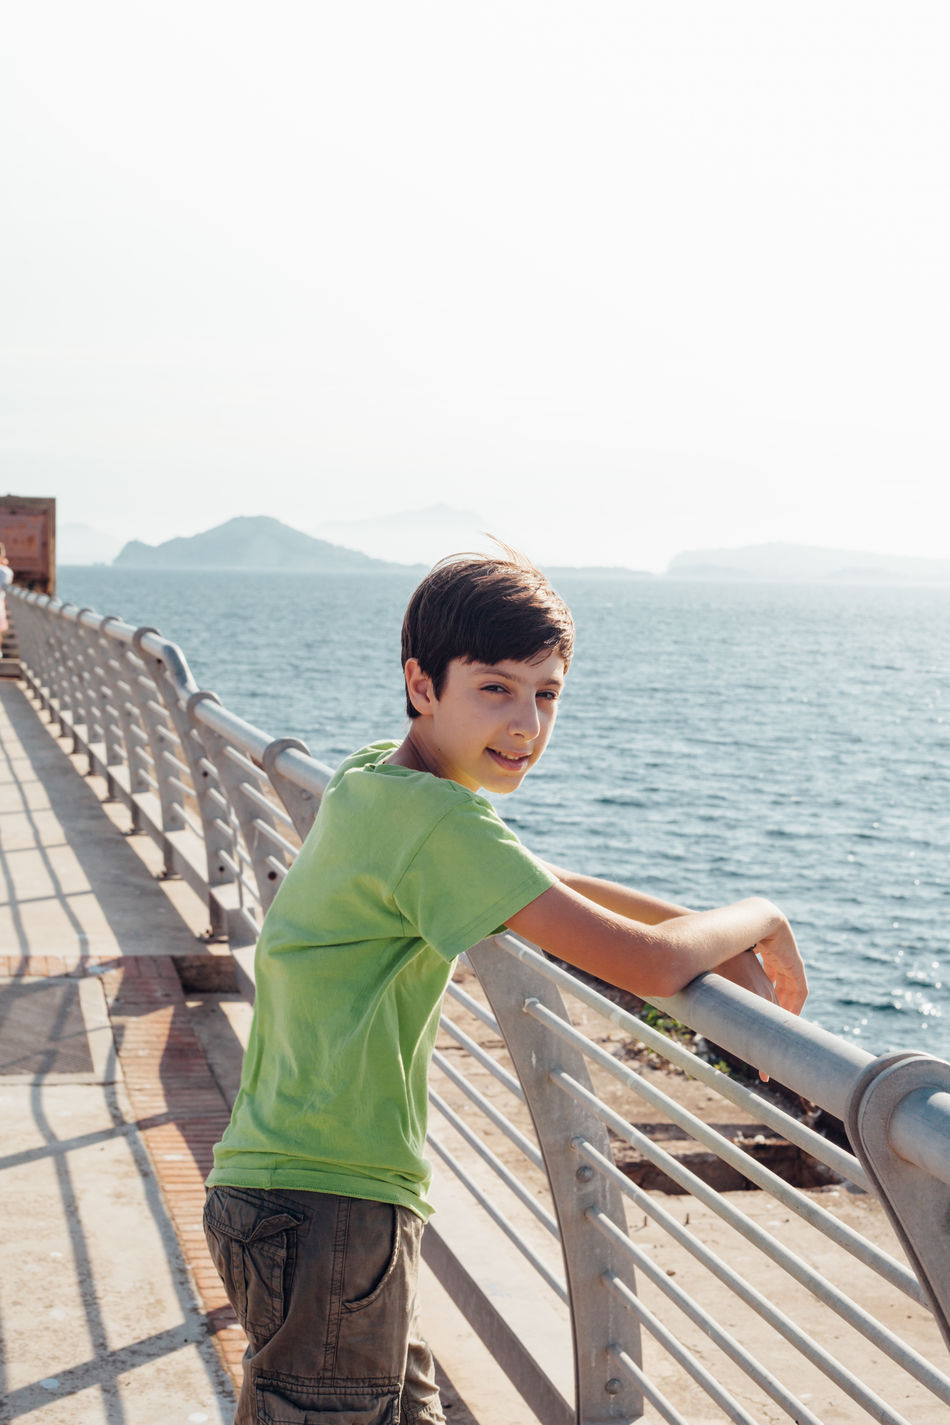 Happy boy on a sea promenade, bay of Naples, Italy Bay Of Naples Beauty In Nature Casual Clothing Clear Sky Day Leisure Activity Lifestyles Mountain Naples, Italy Napoli Nature One Person Outdoors People Railing Real People Scenics Sea Sky Water Wood - Material Wood Paneling Young Adult